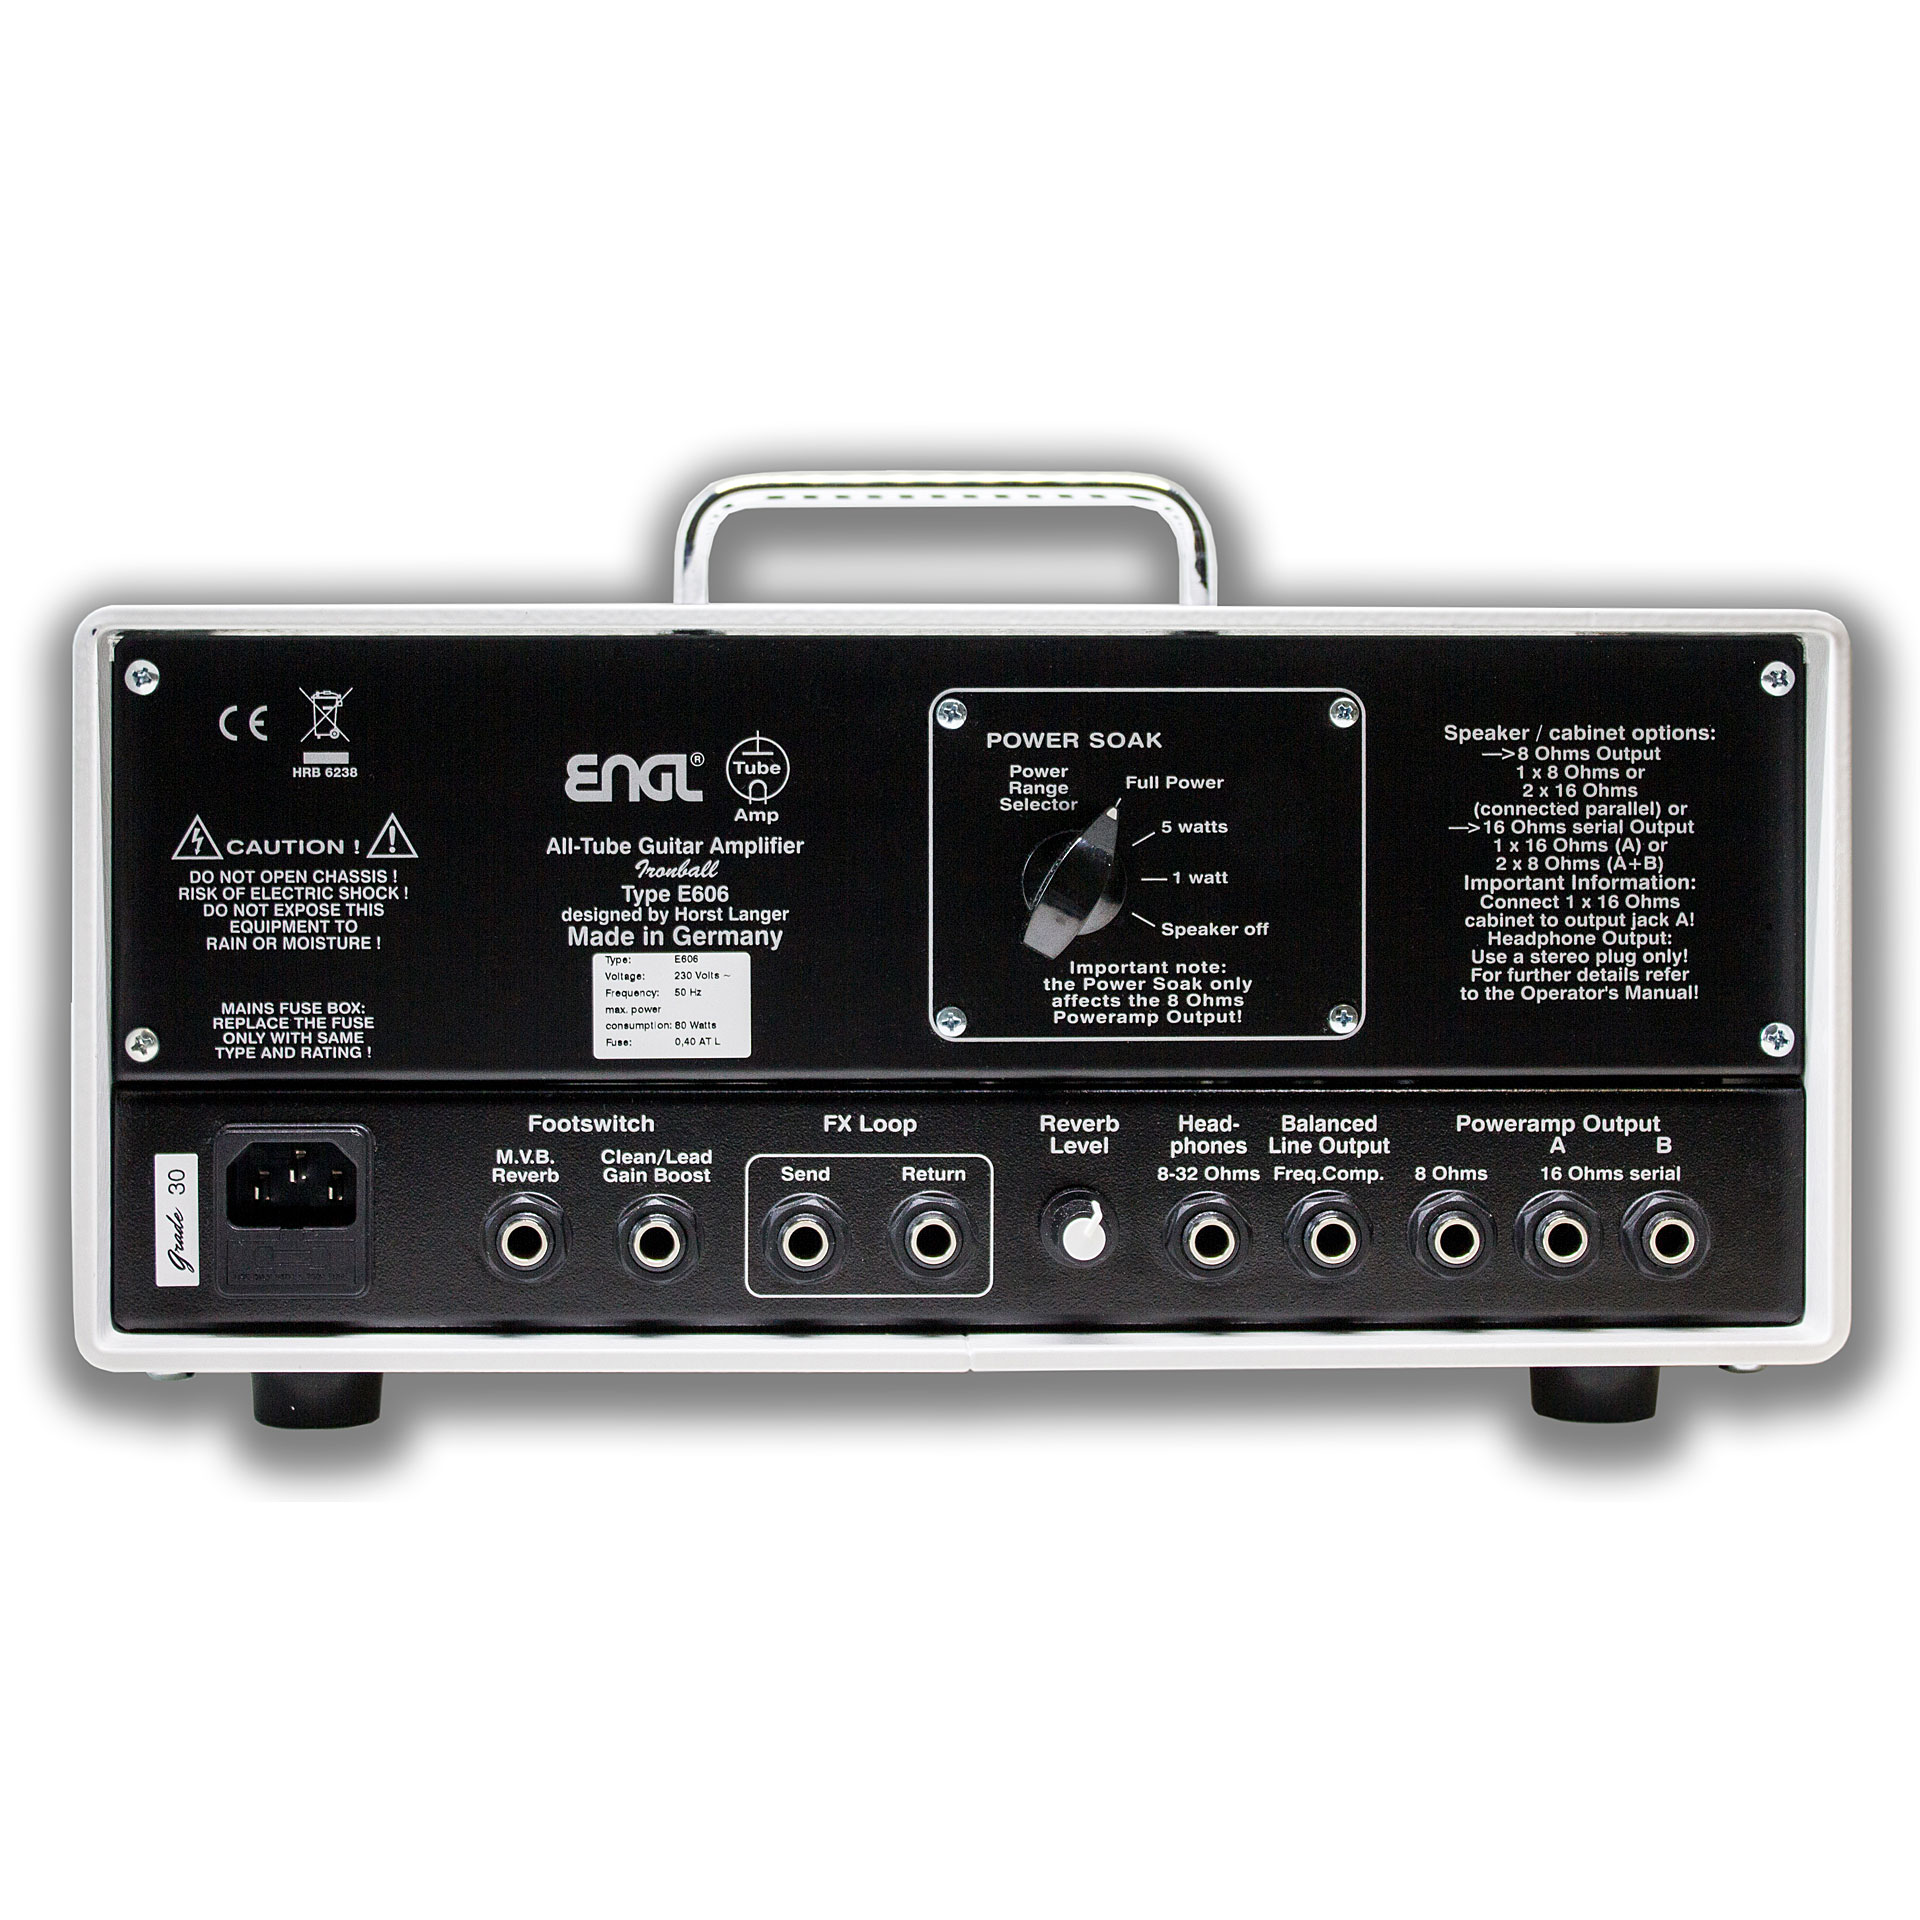 engl ironball e606 white edition guitar amp head. Black Bedroom Furniture Sets. Home Design Ideas